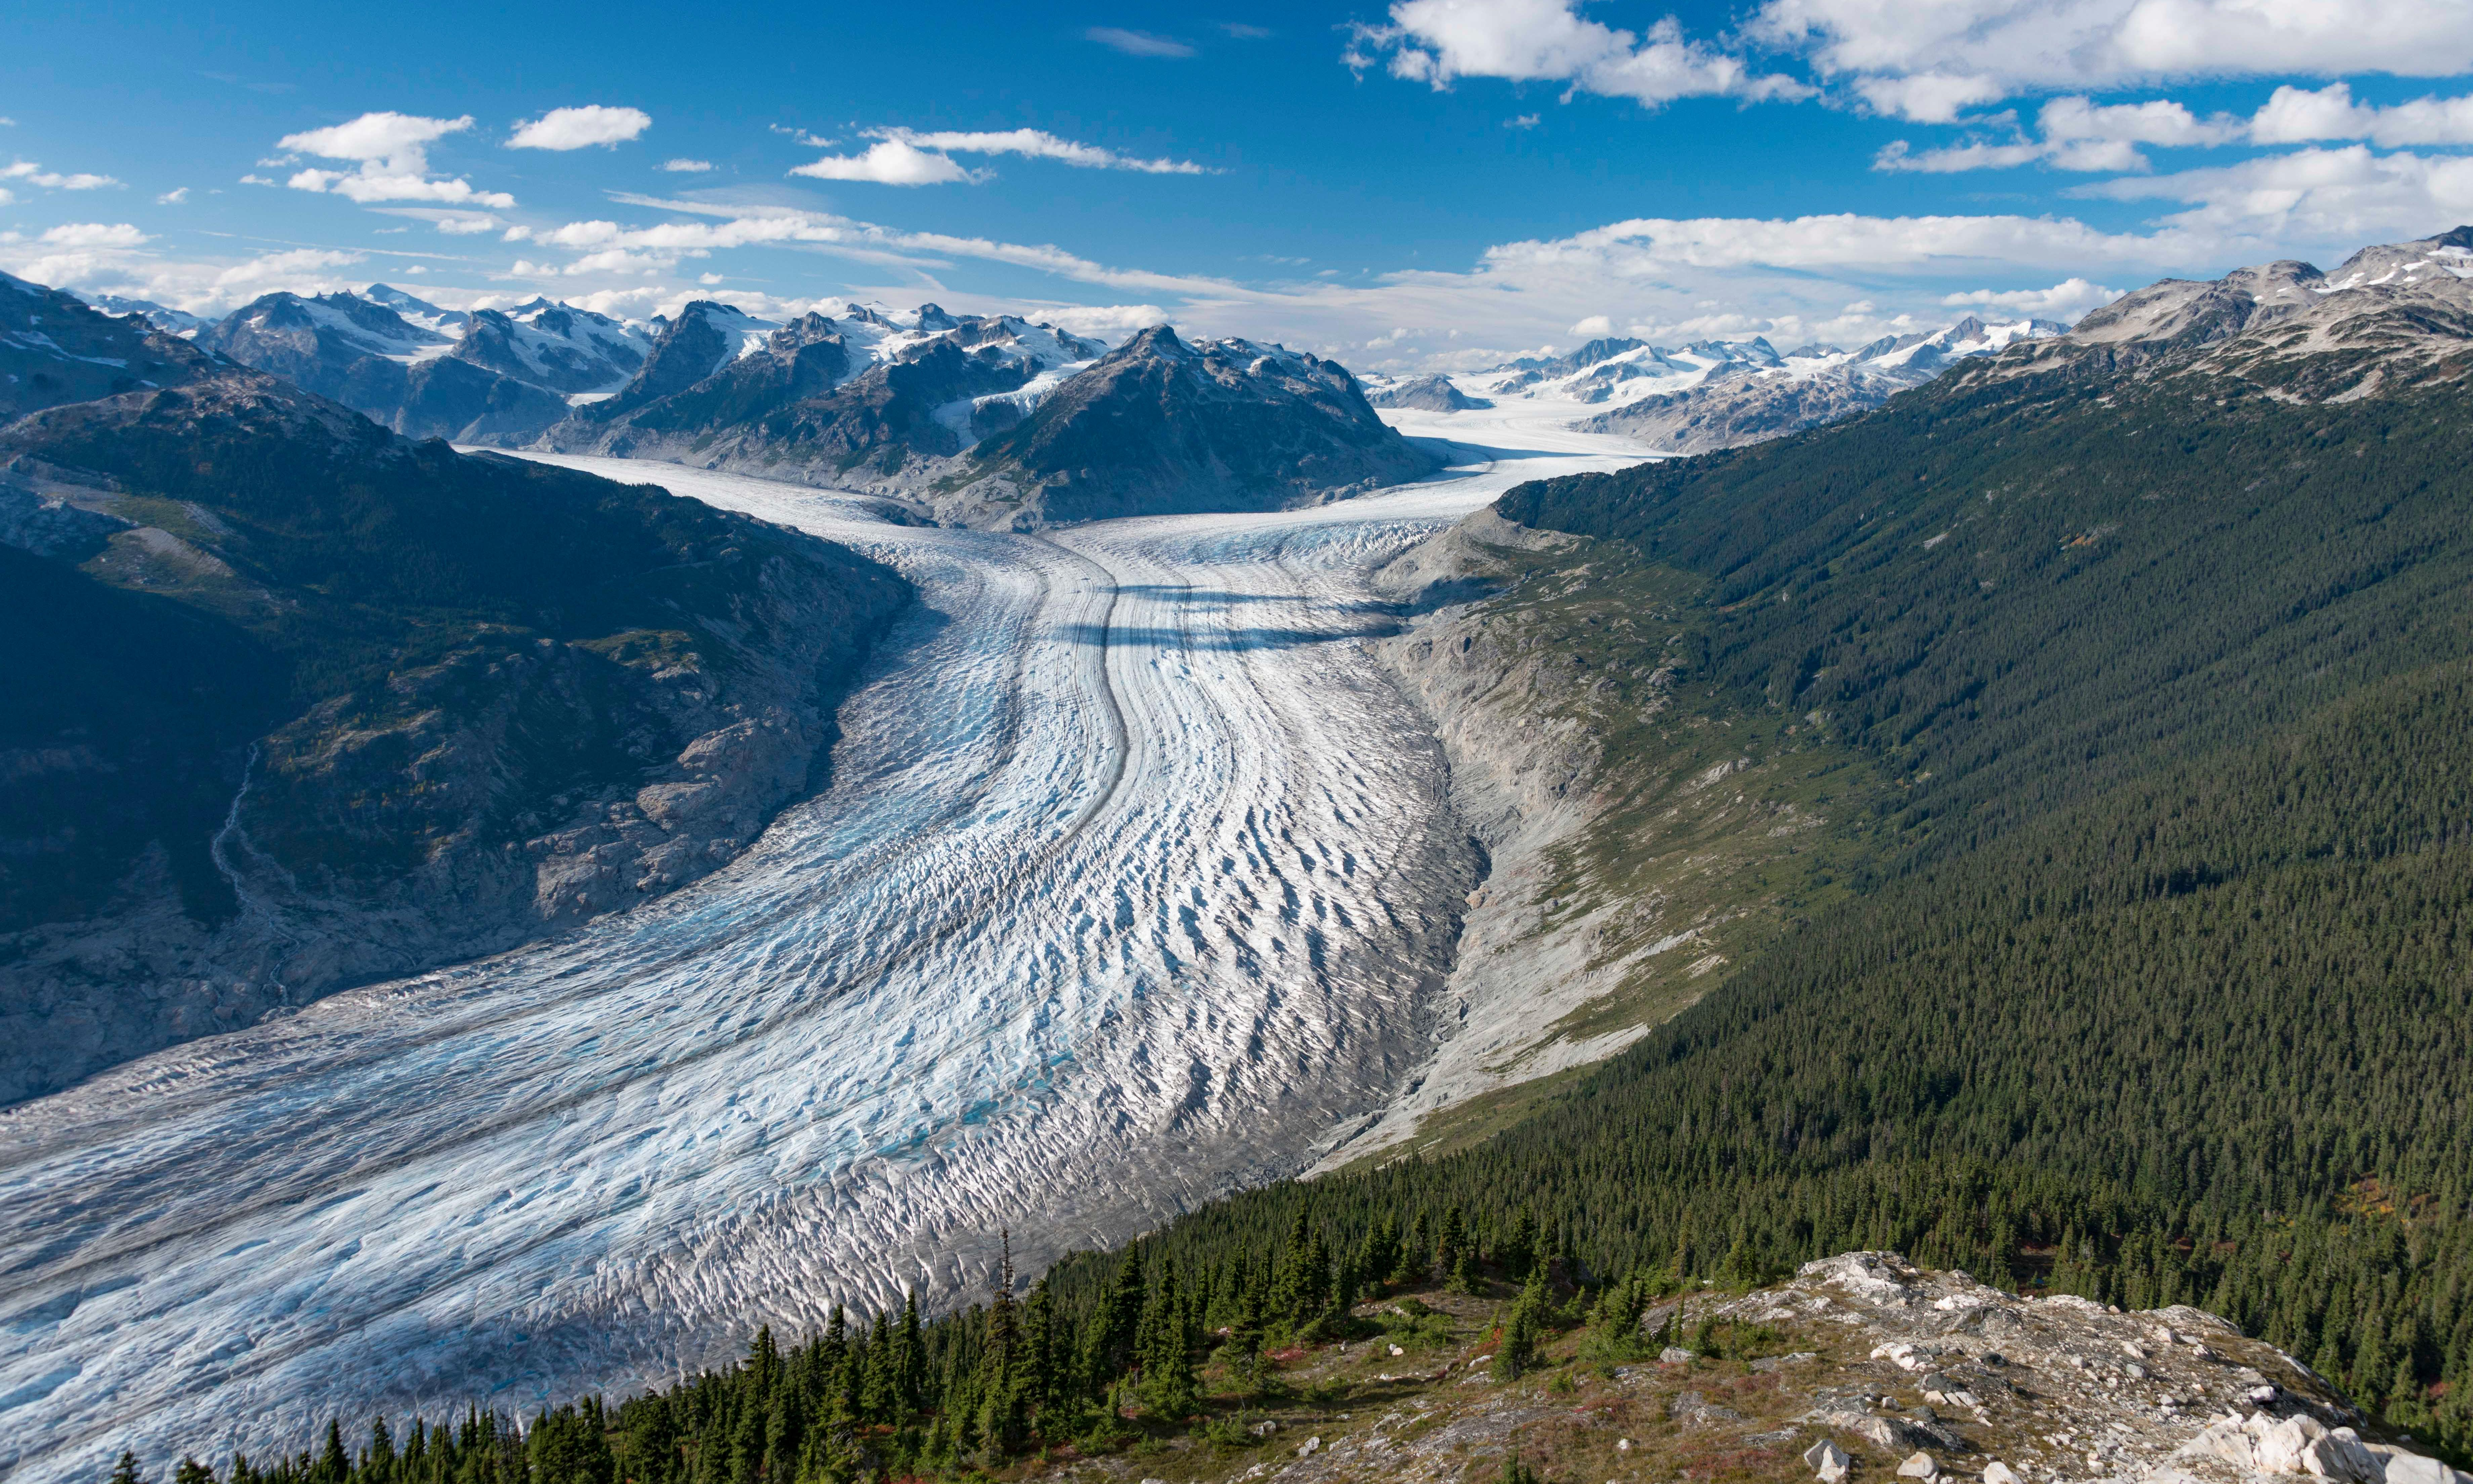 North American glaciers melting much faster than 10 years ago – study